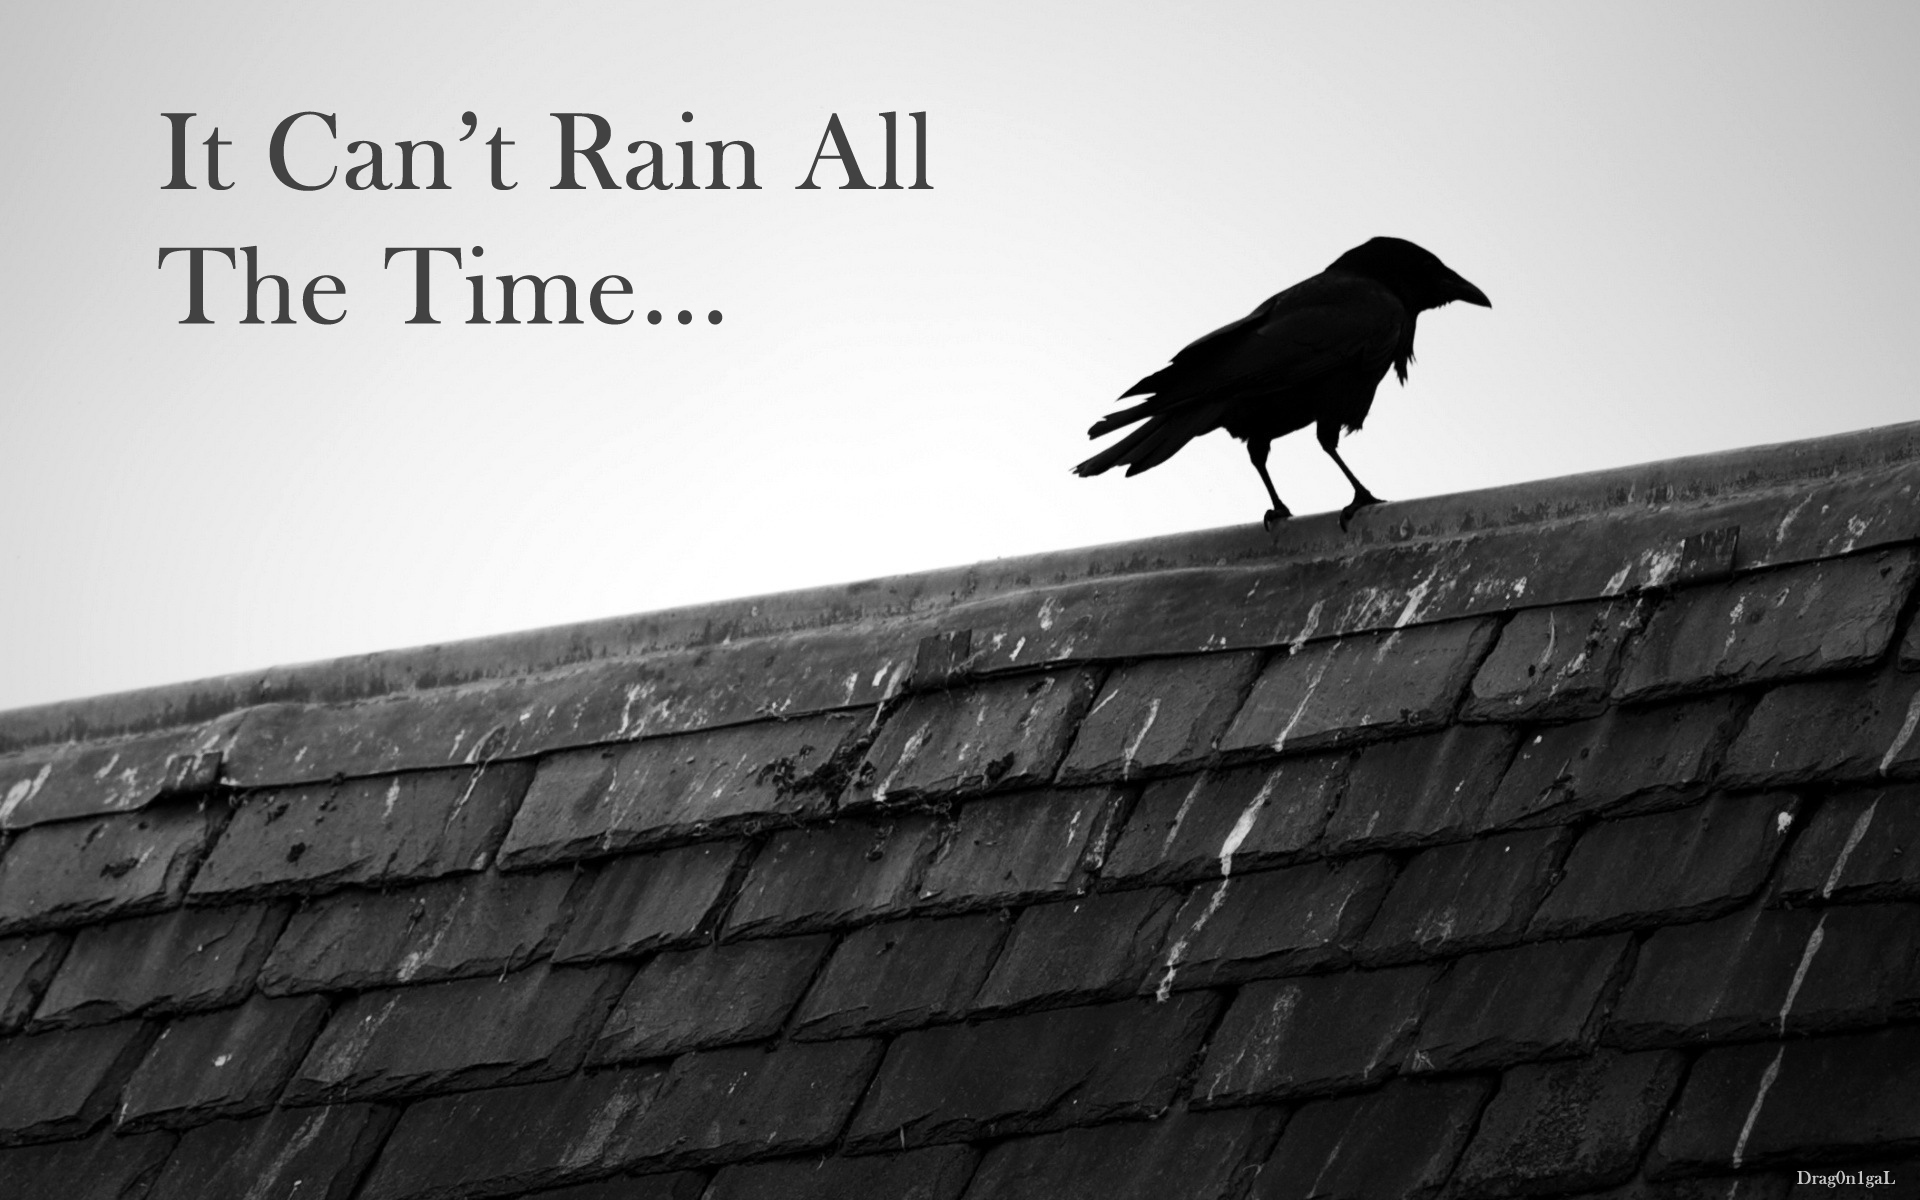 The crow Wallpaper - It Can't Rain All The Time Full HD ...